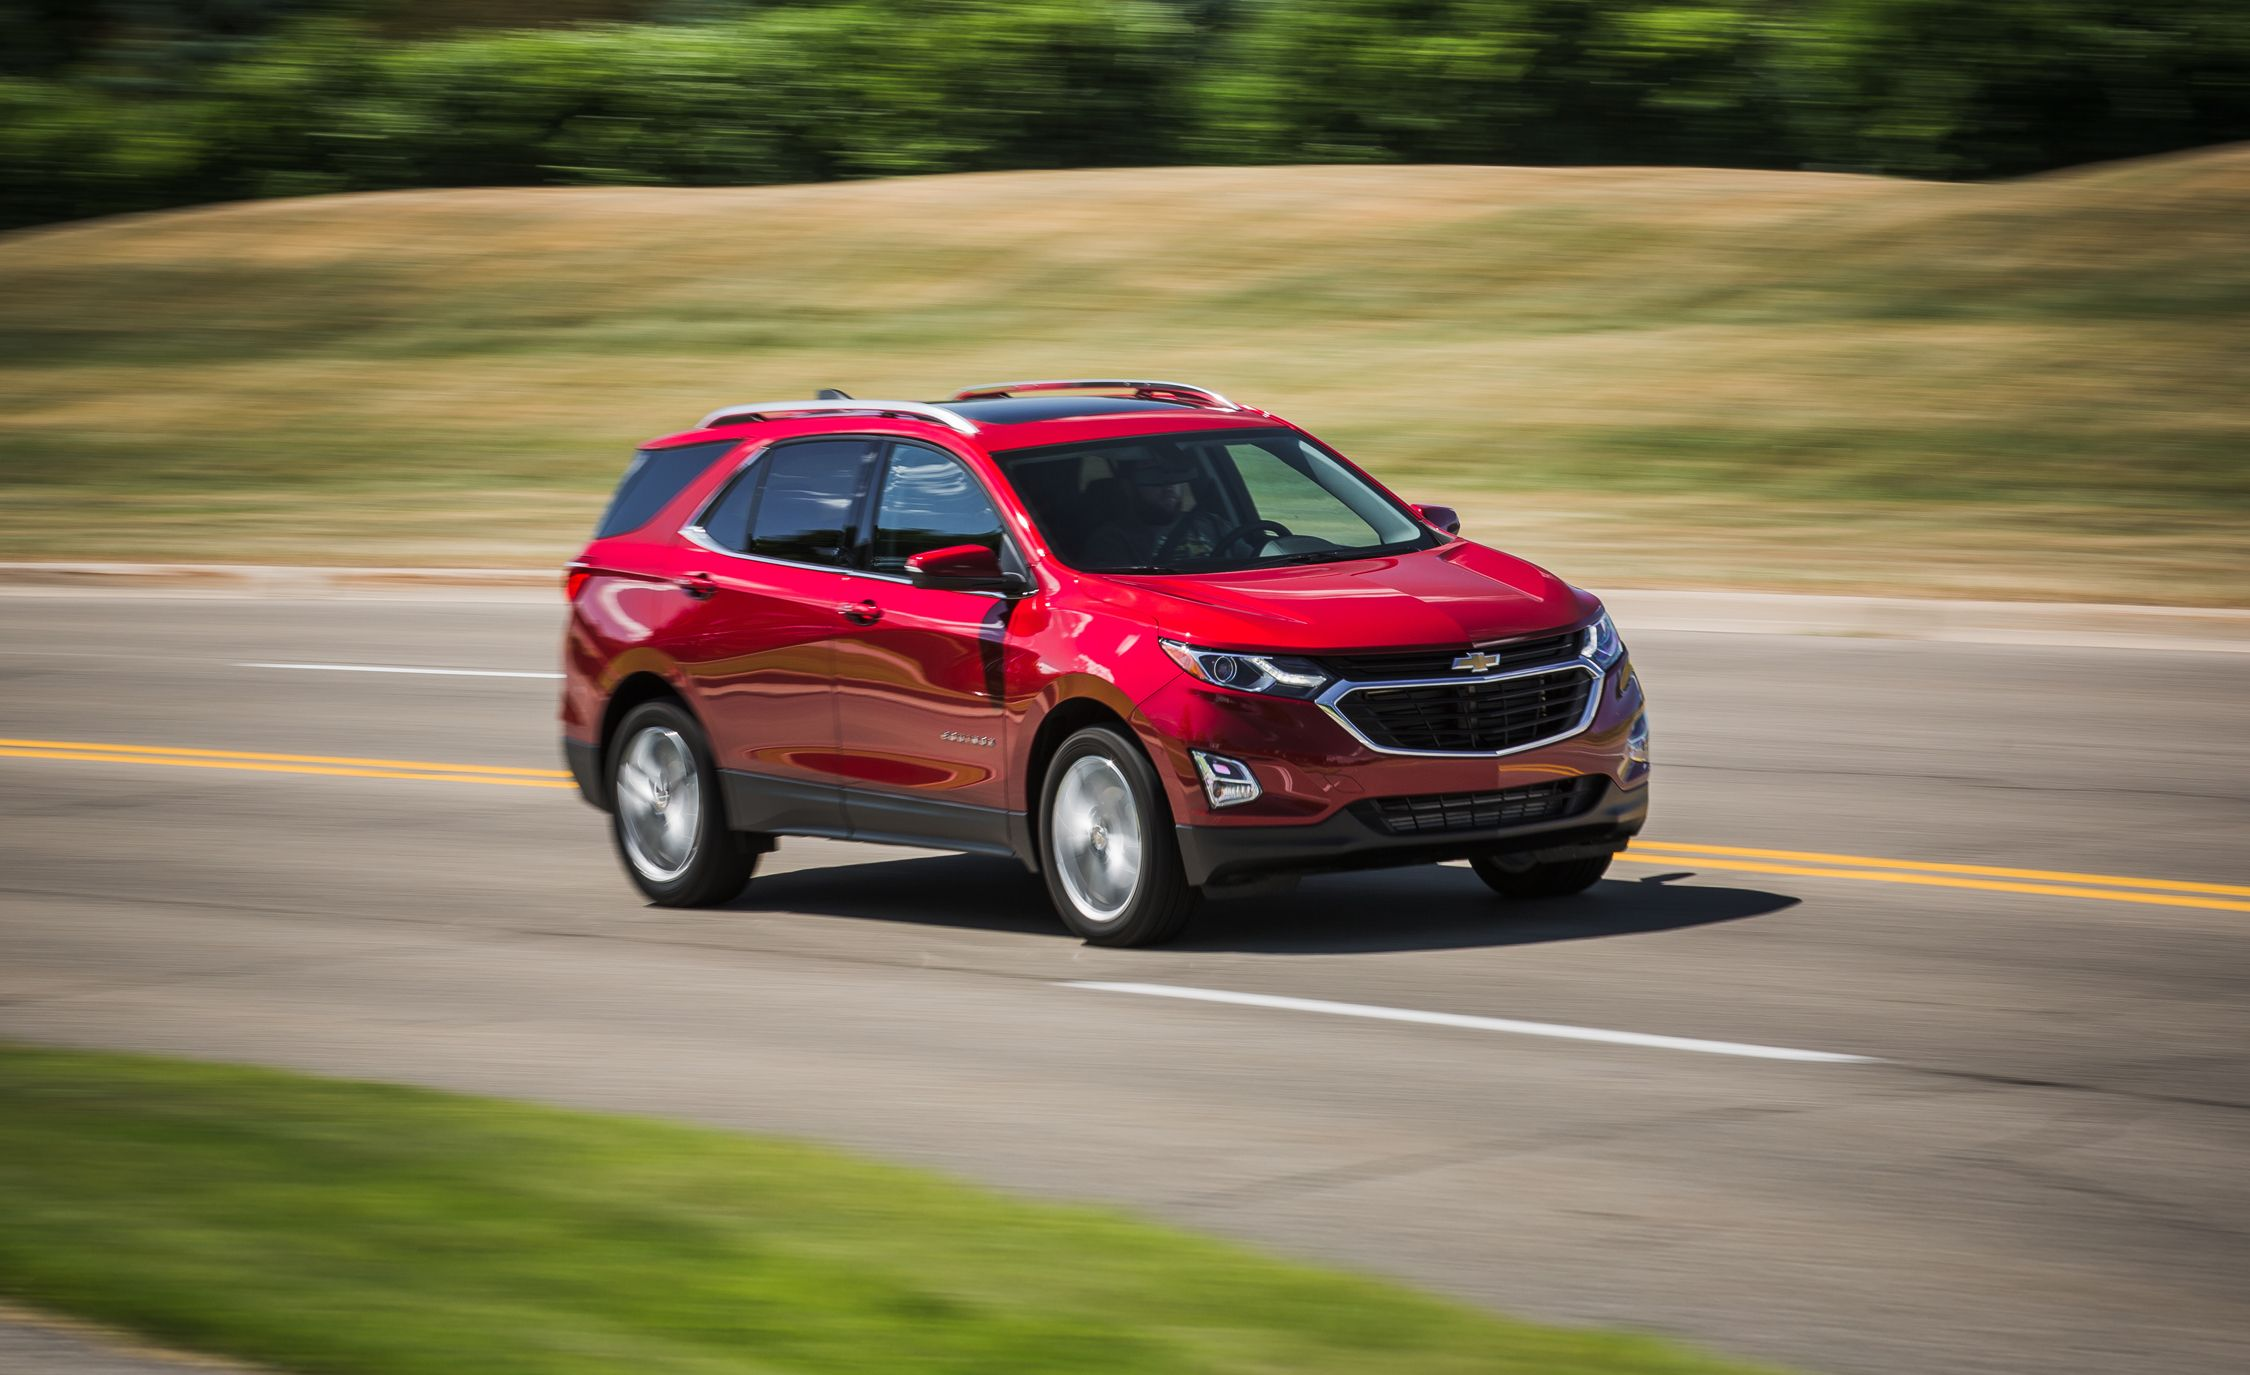 Chevy Equinox 3 4 Liter Engine Diagram Real Wiring Gm L 2018 Chevrolet 2 0t First Drive Review Car And Driver Rh Caranddriver Com 34